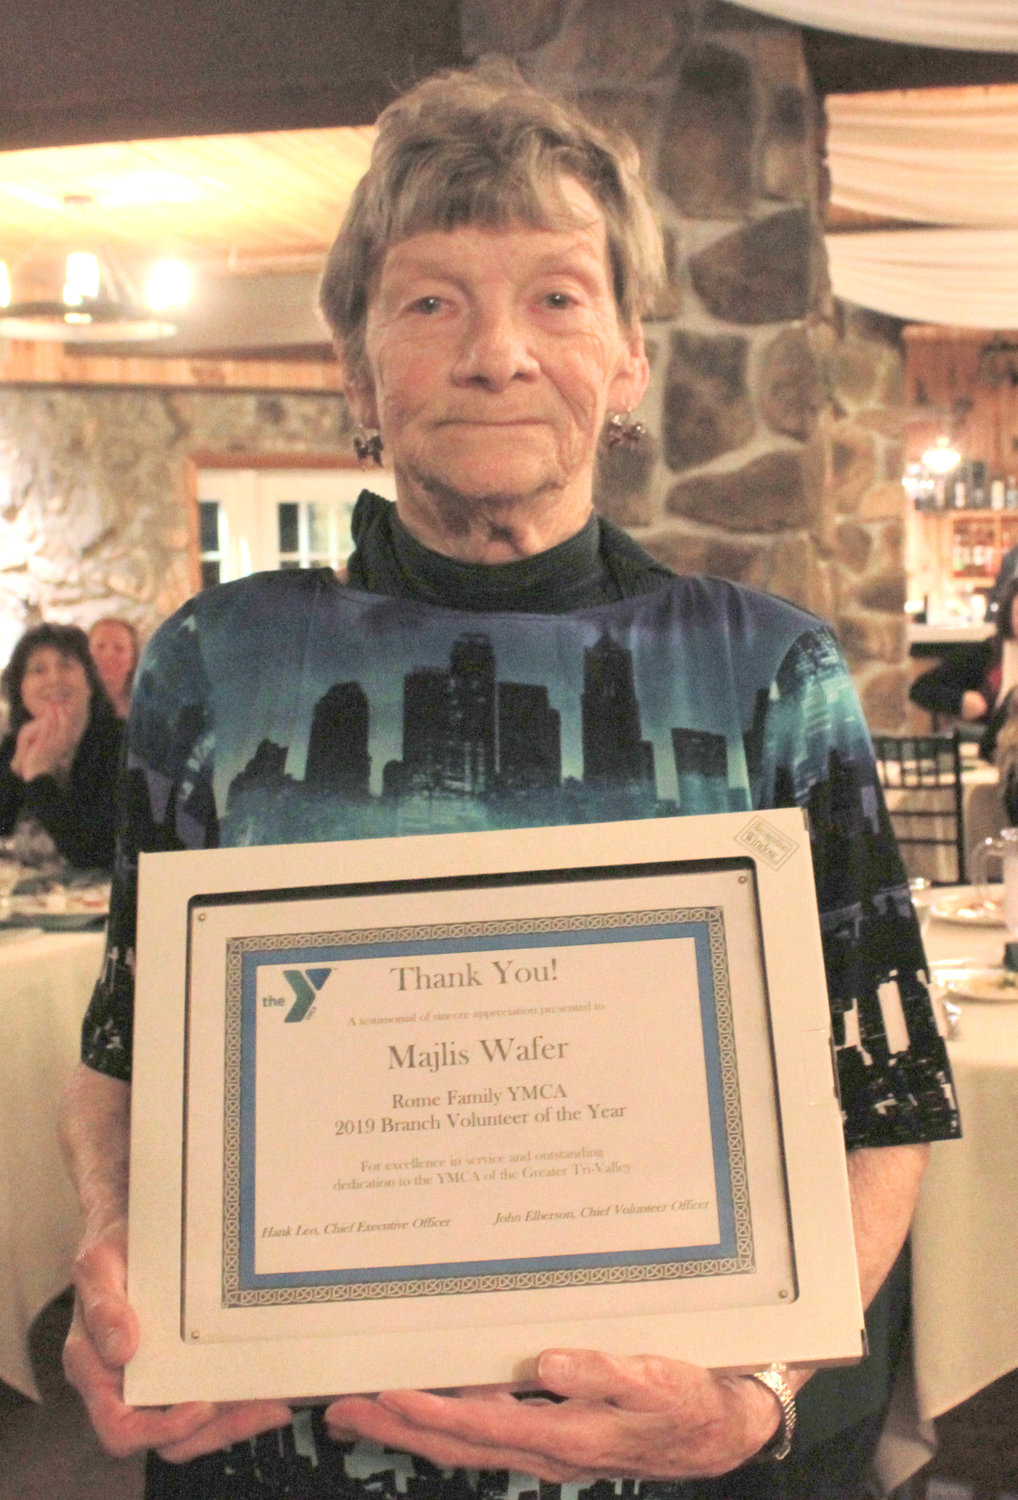 ROME VOLUNTEER — Majlis Wafer was awarded the Rome Volunteer of the Year at the annual YMCA 2020 Recognition Program on Wednesday.